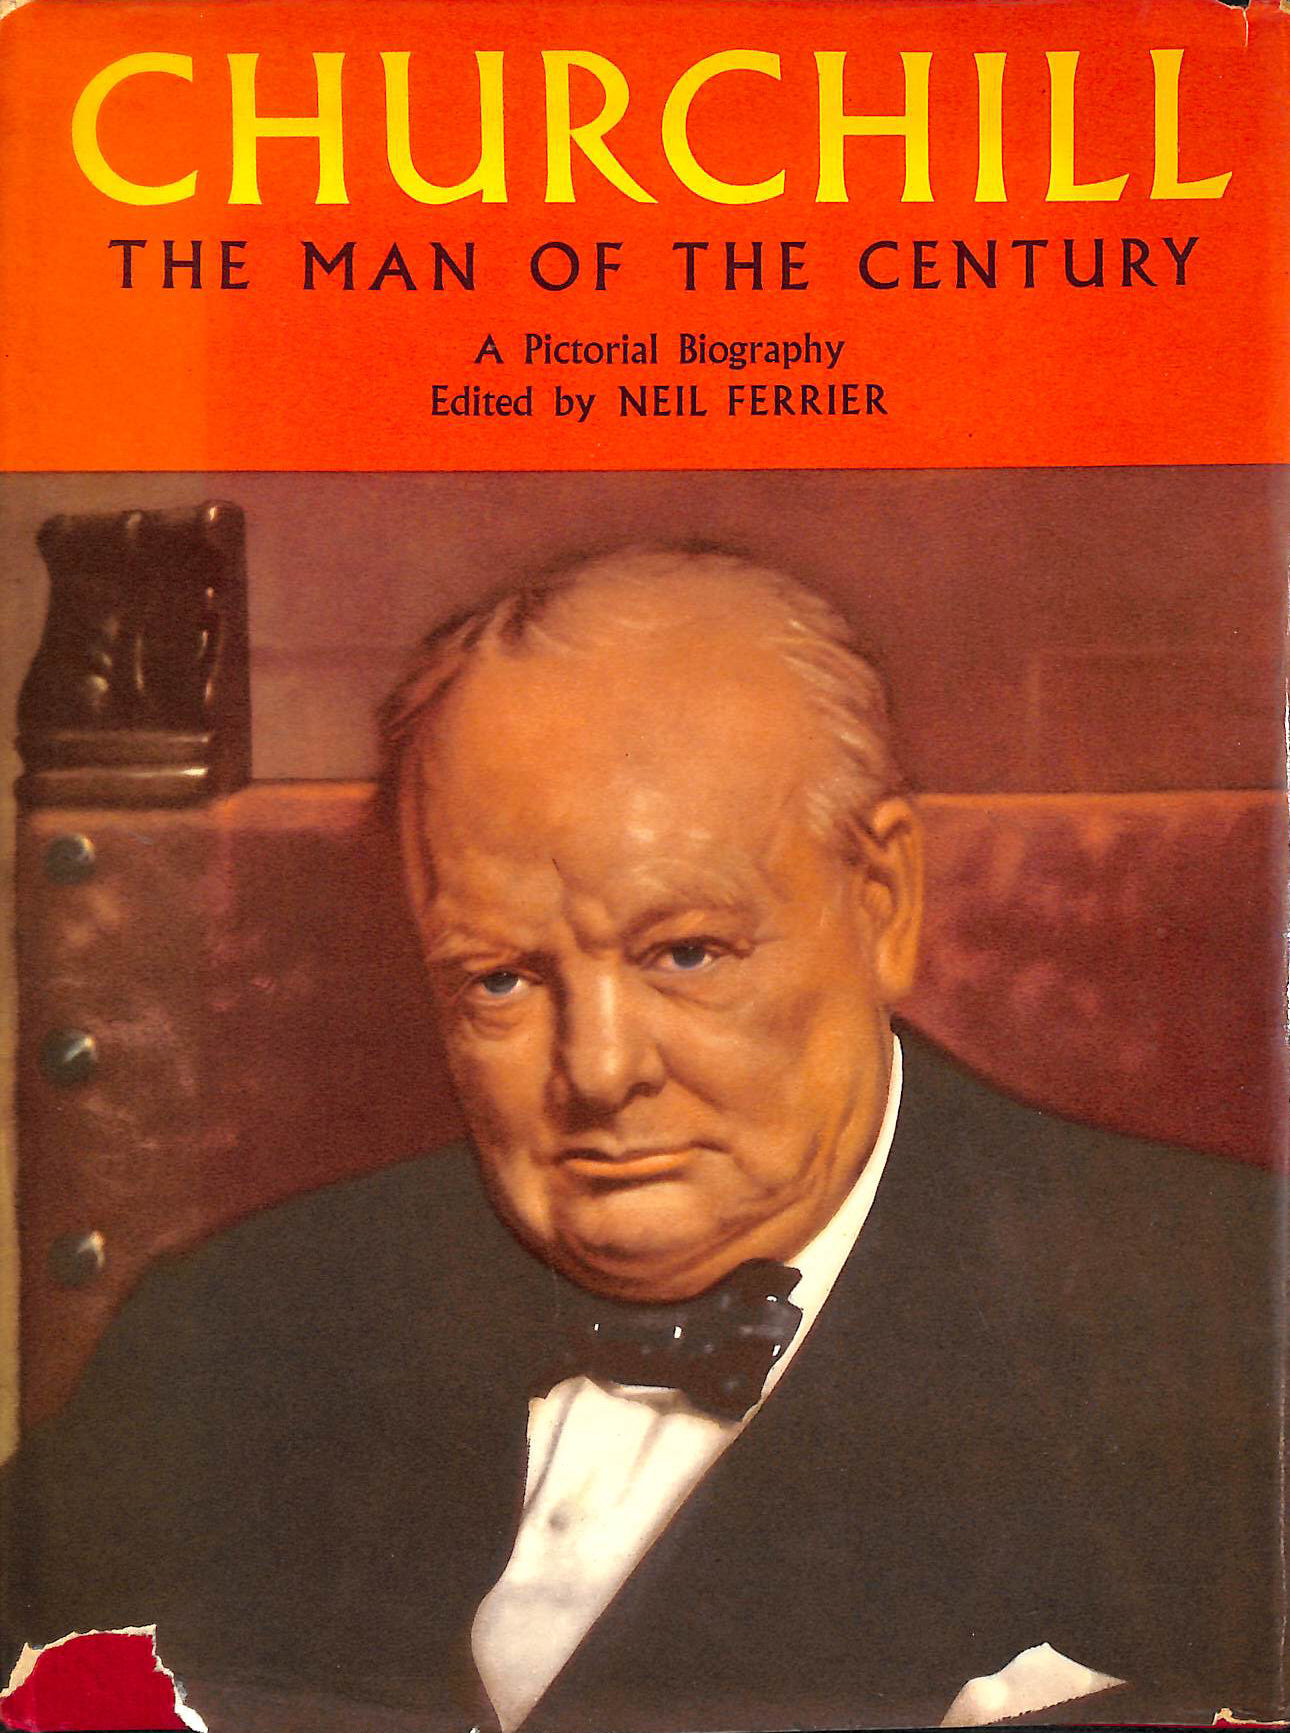 Image for CHURCHILL-THE MAN OF THE CENTURY